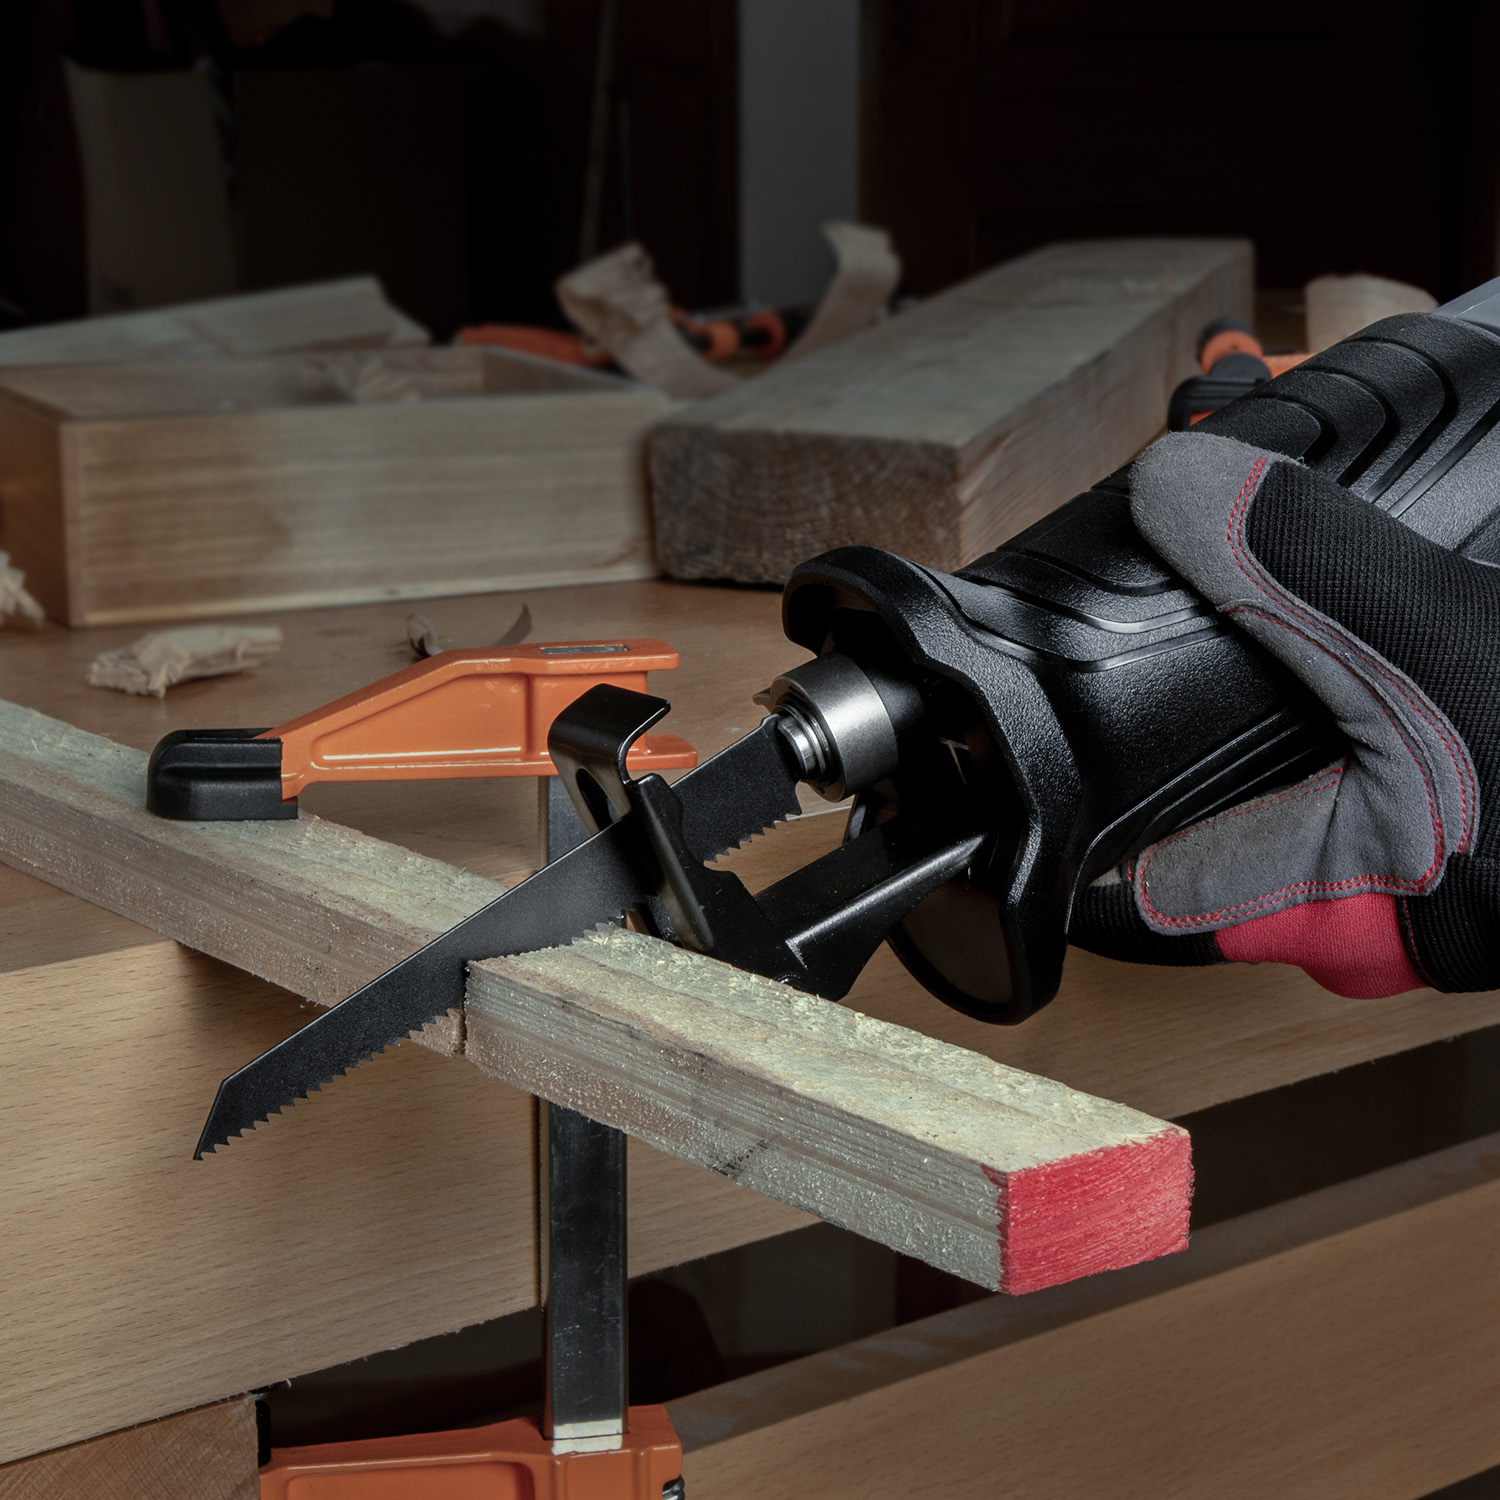 WORKPRO Electric Reciprocating Saw Cutting Wood